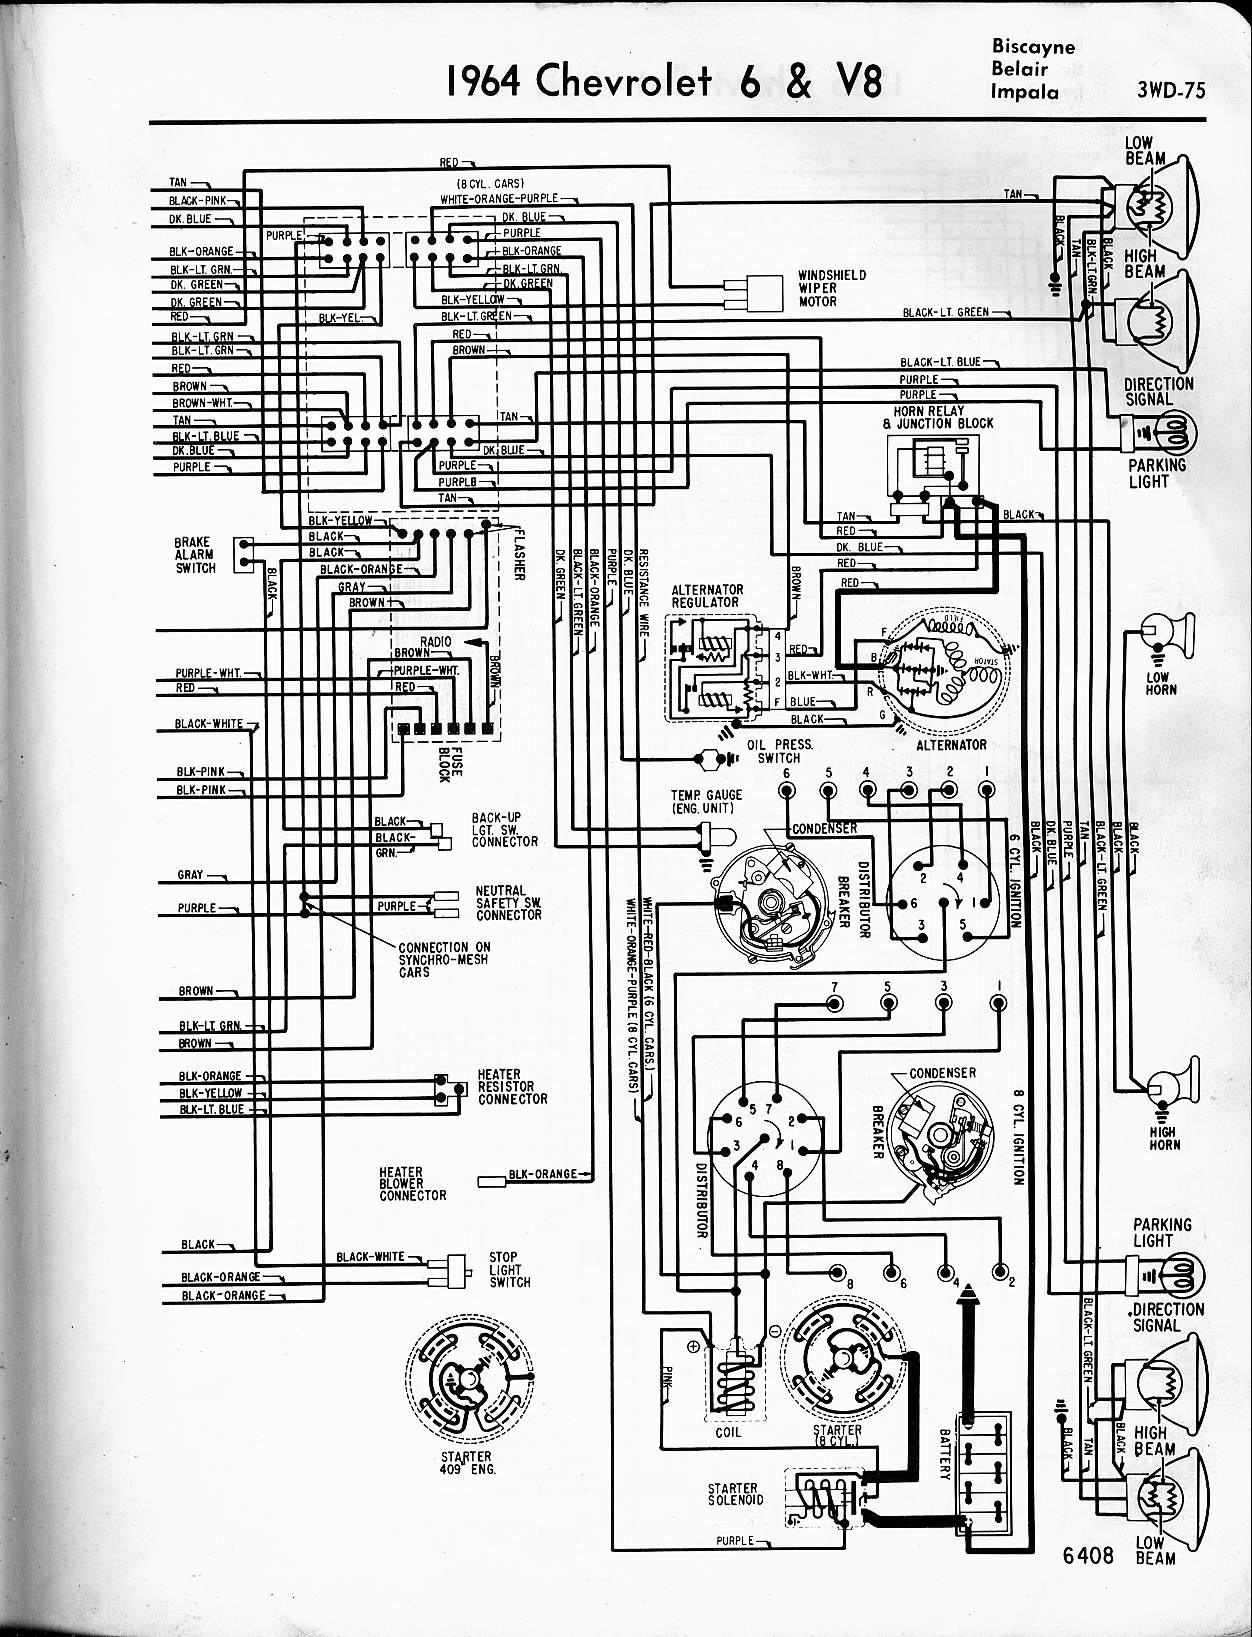 57 65 chevy wiring diagrams rh oldcarmanualproject com 65 Impala Radio Wiring Diagram 1966 Impala Wiring Diagram